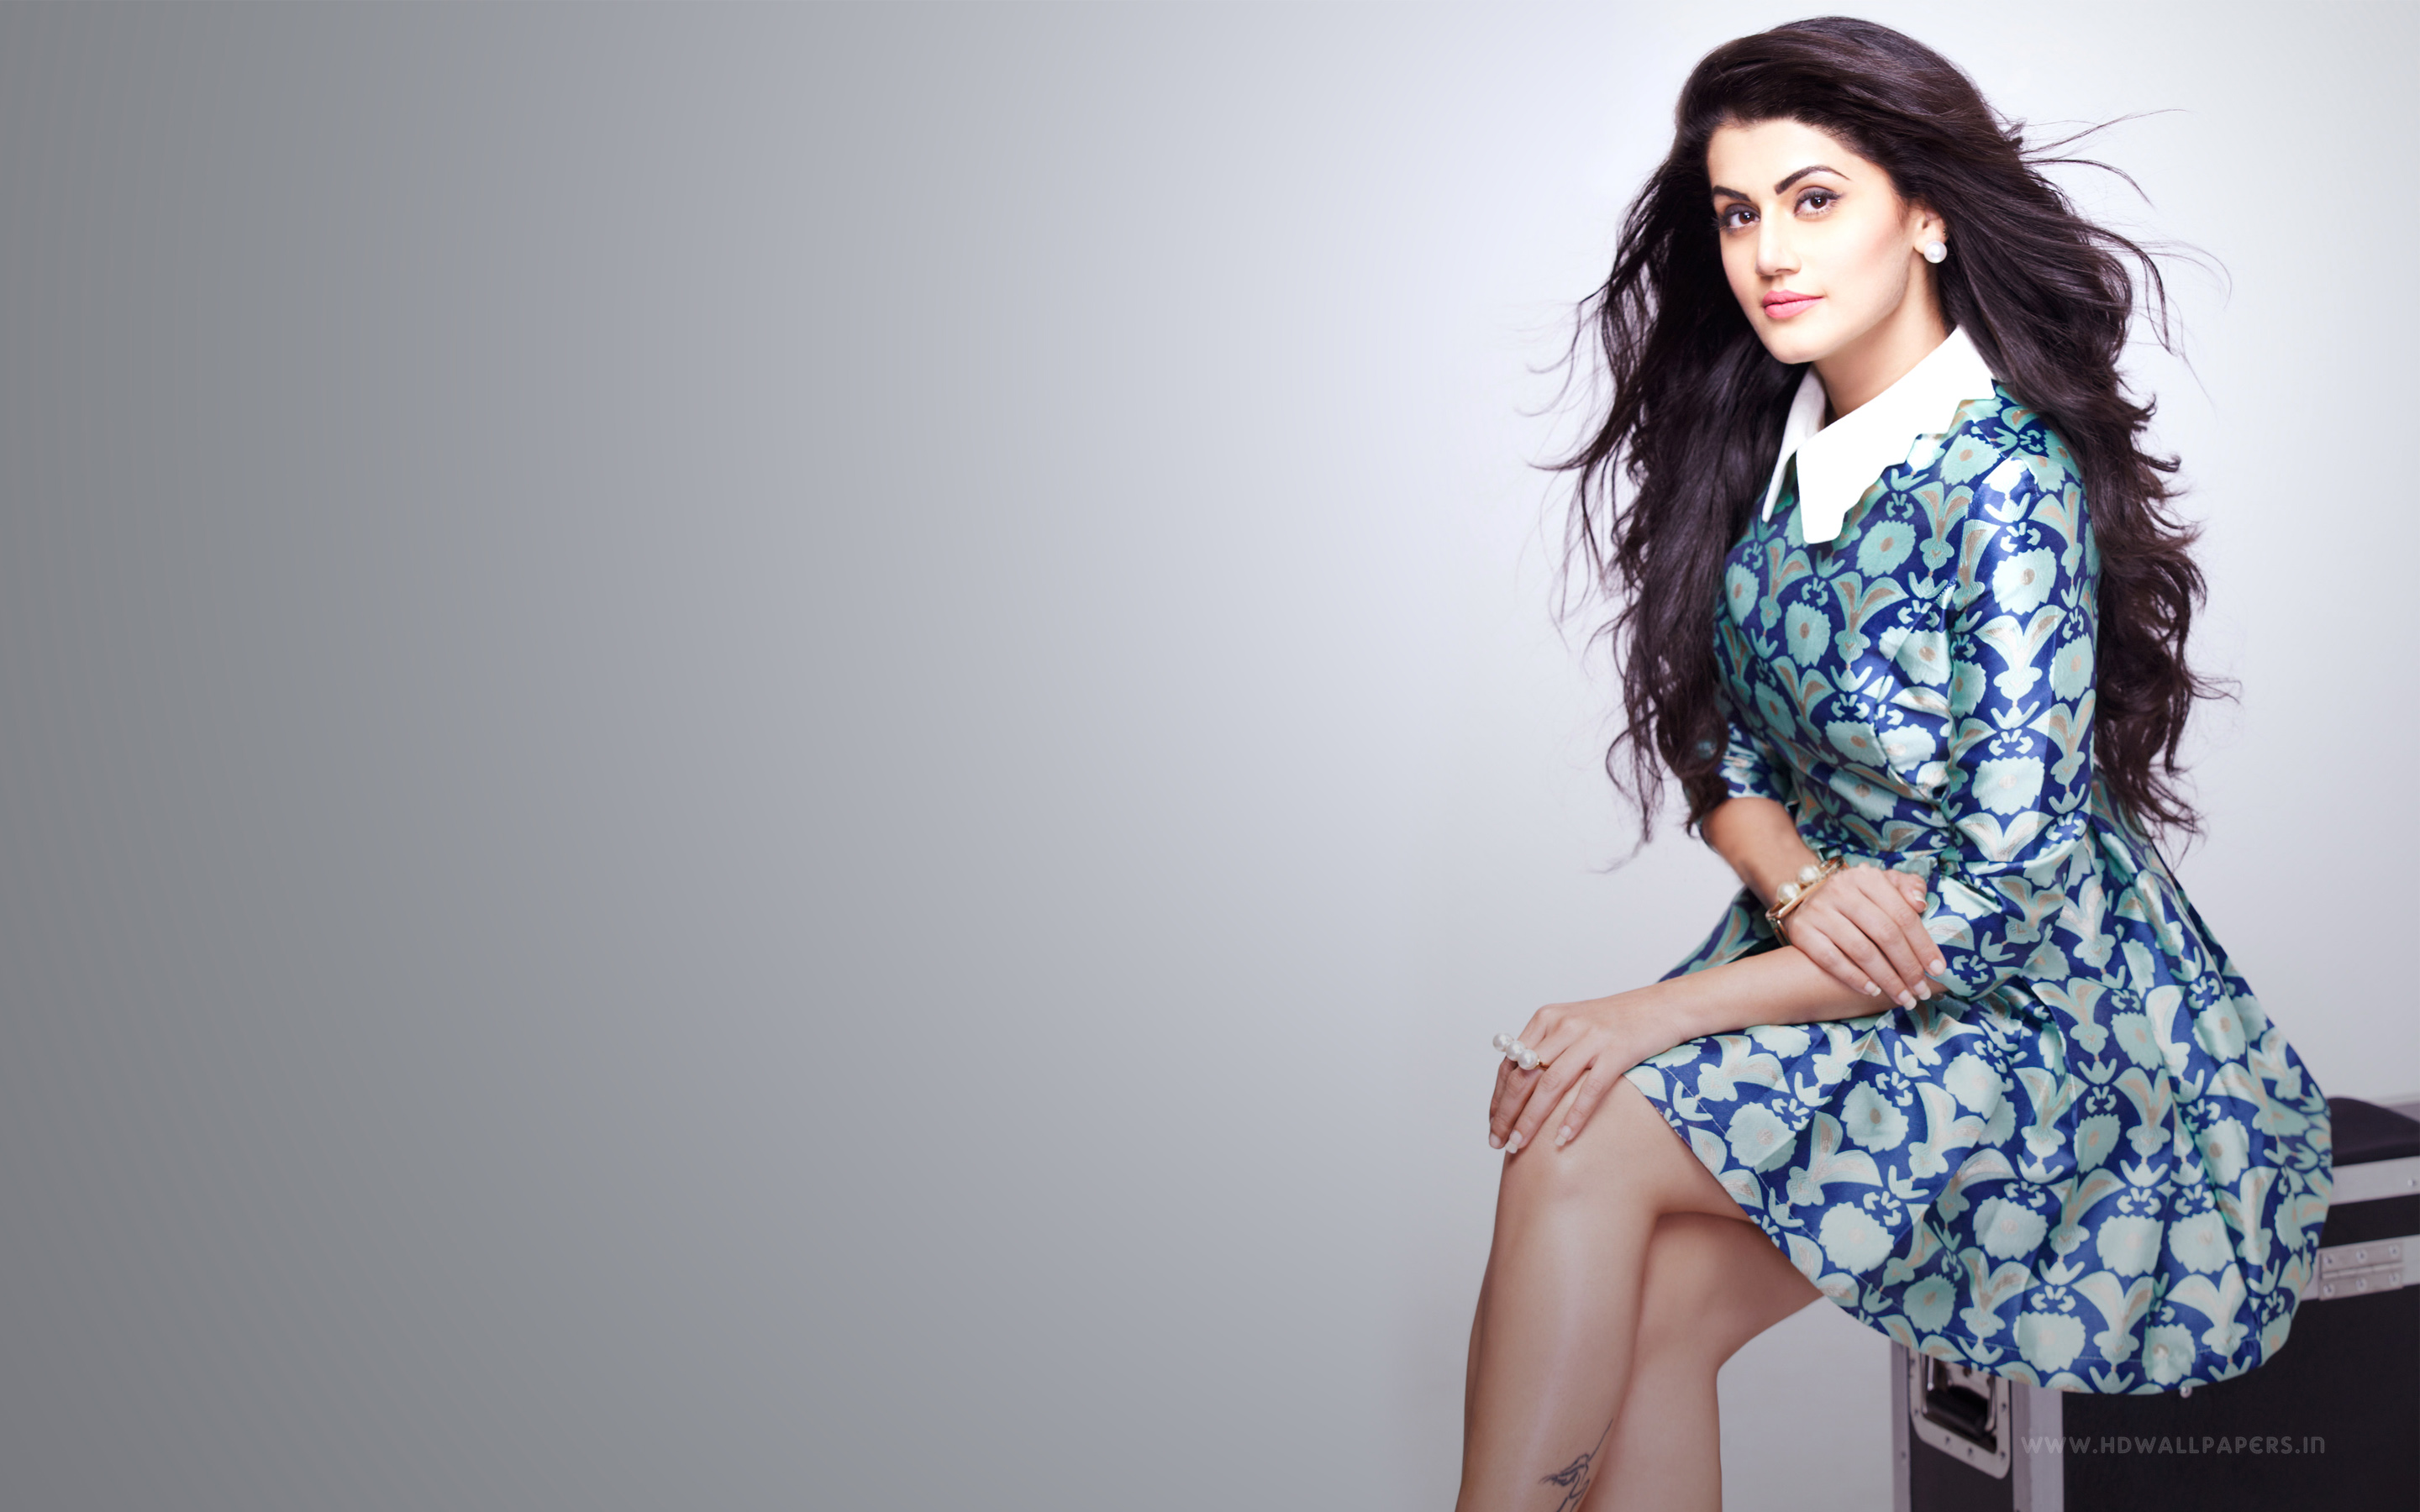 2880x1800 - Tapsee pannu Wallpapers 1